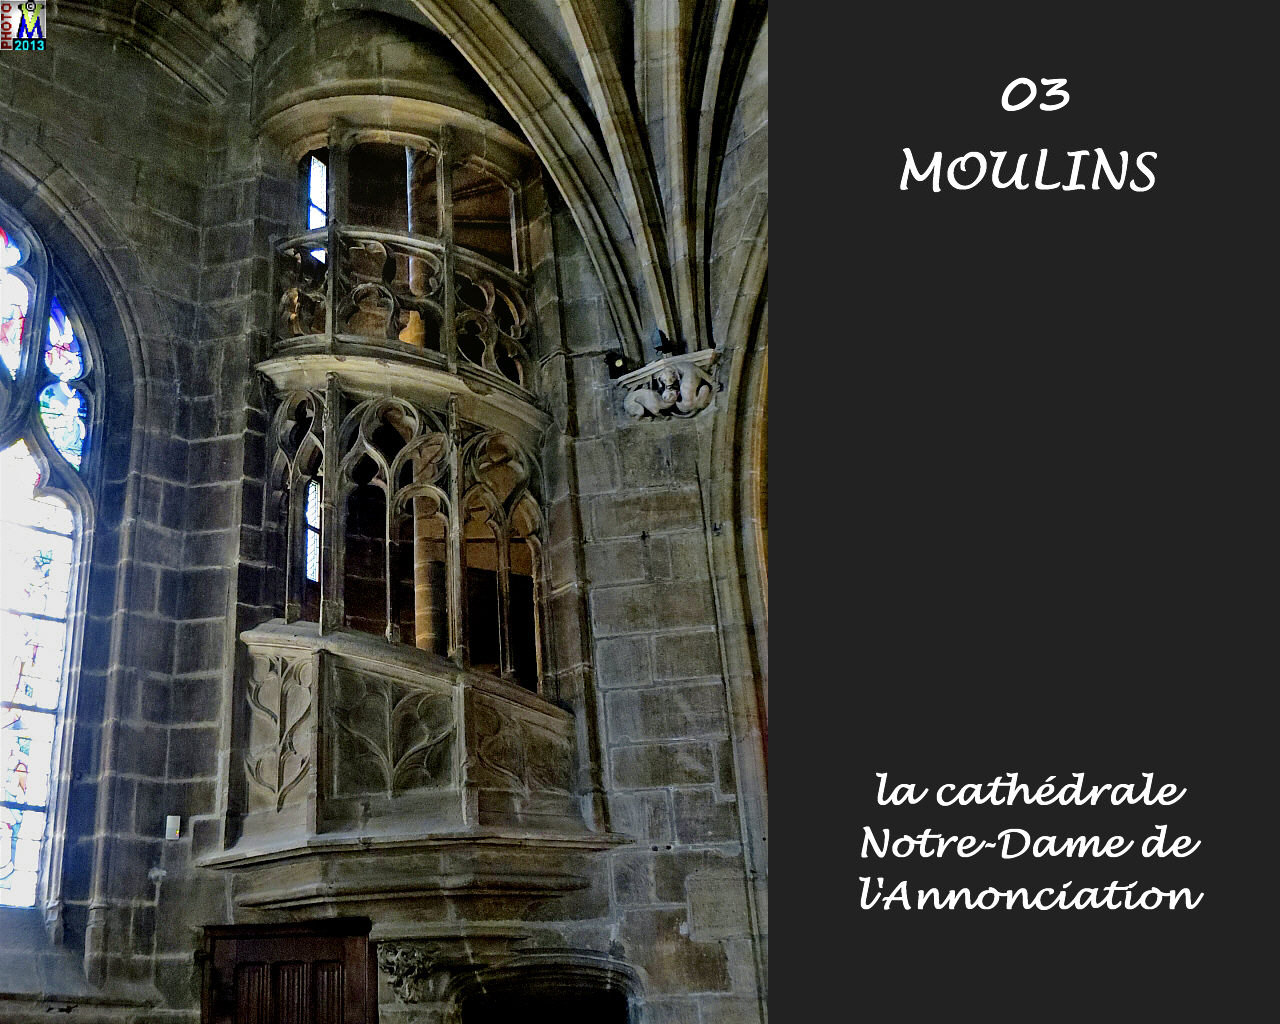 03MOULINS_cathedrale_210.jpg